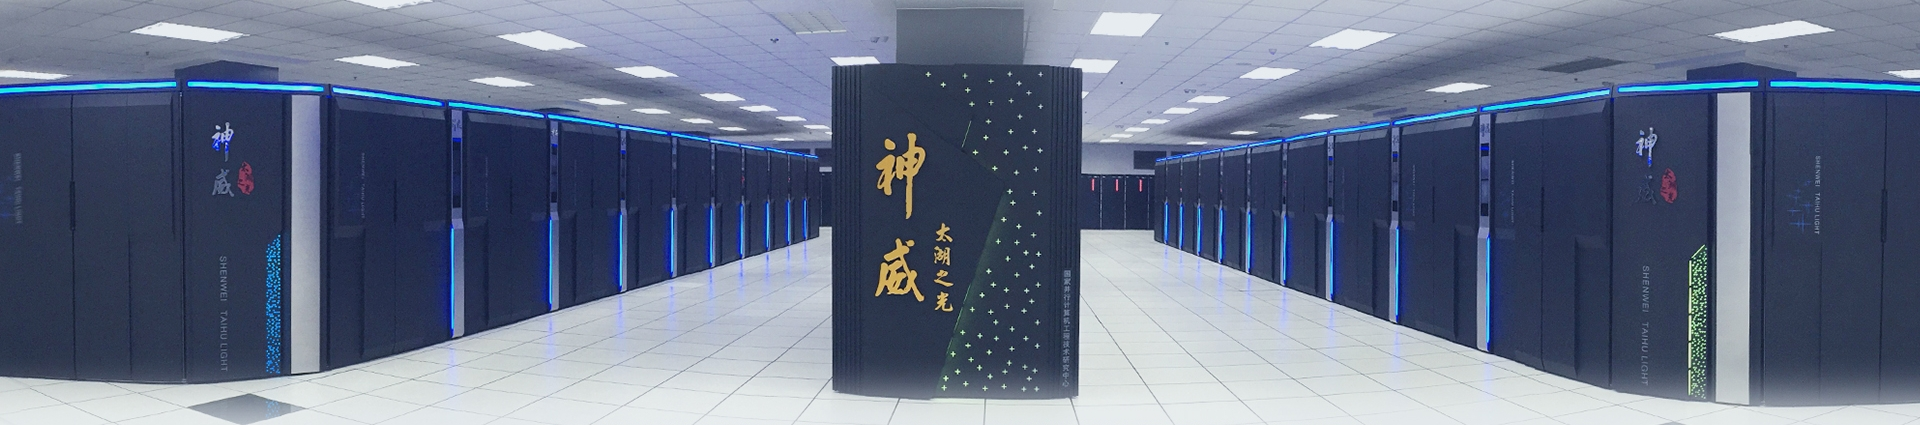 <strong>Here comes the sun.</strong> Currently leading the Top500 list, China's Sunway TaihuLight supercomputer is the world's first computer with a peak performance of over 125 PetaFLOPS. Courtesy National Supercomputing Center, Wuxi.